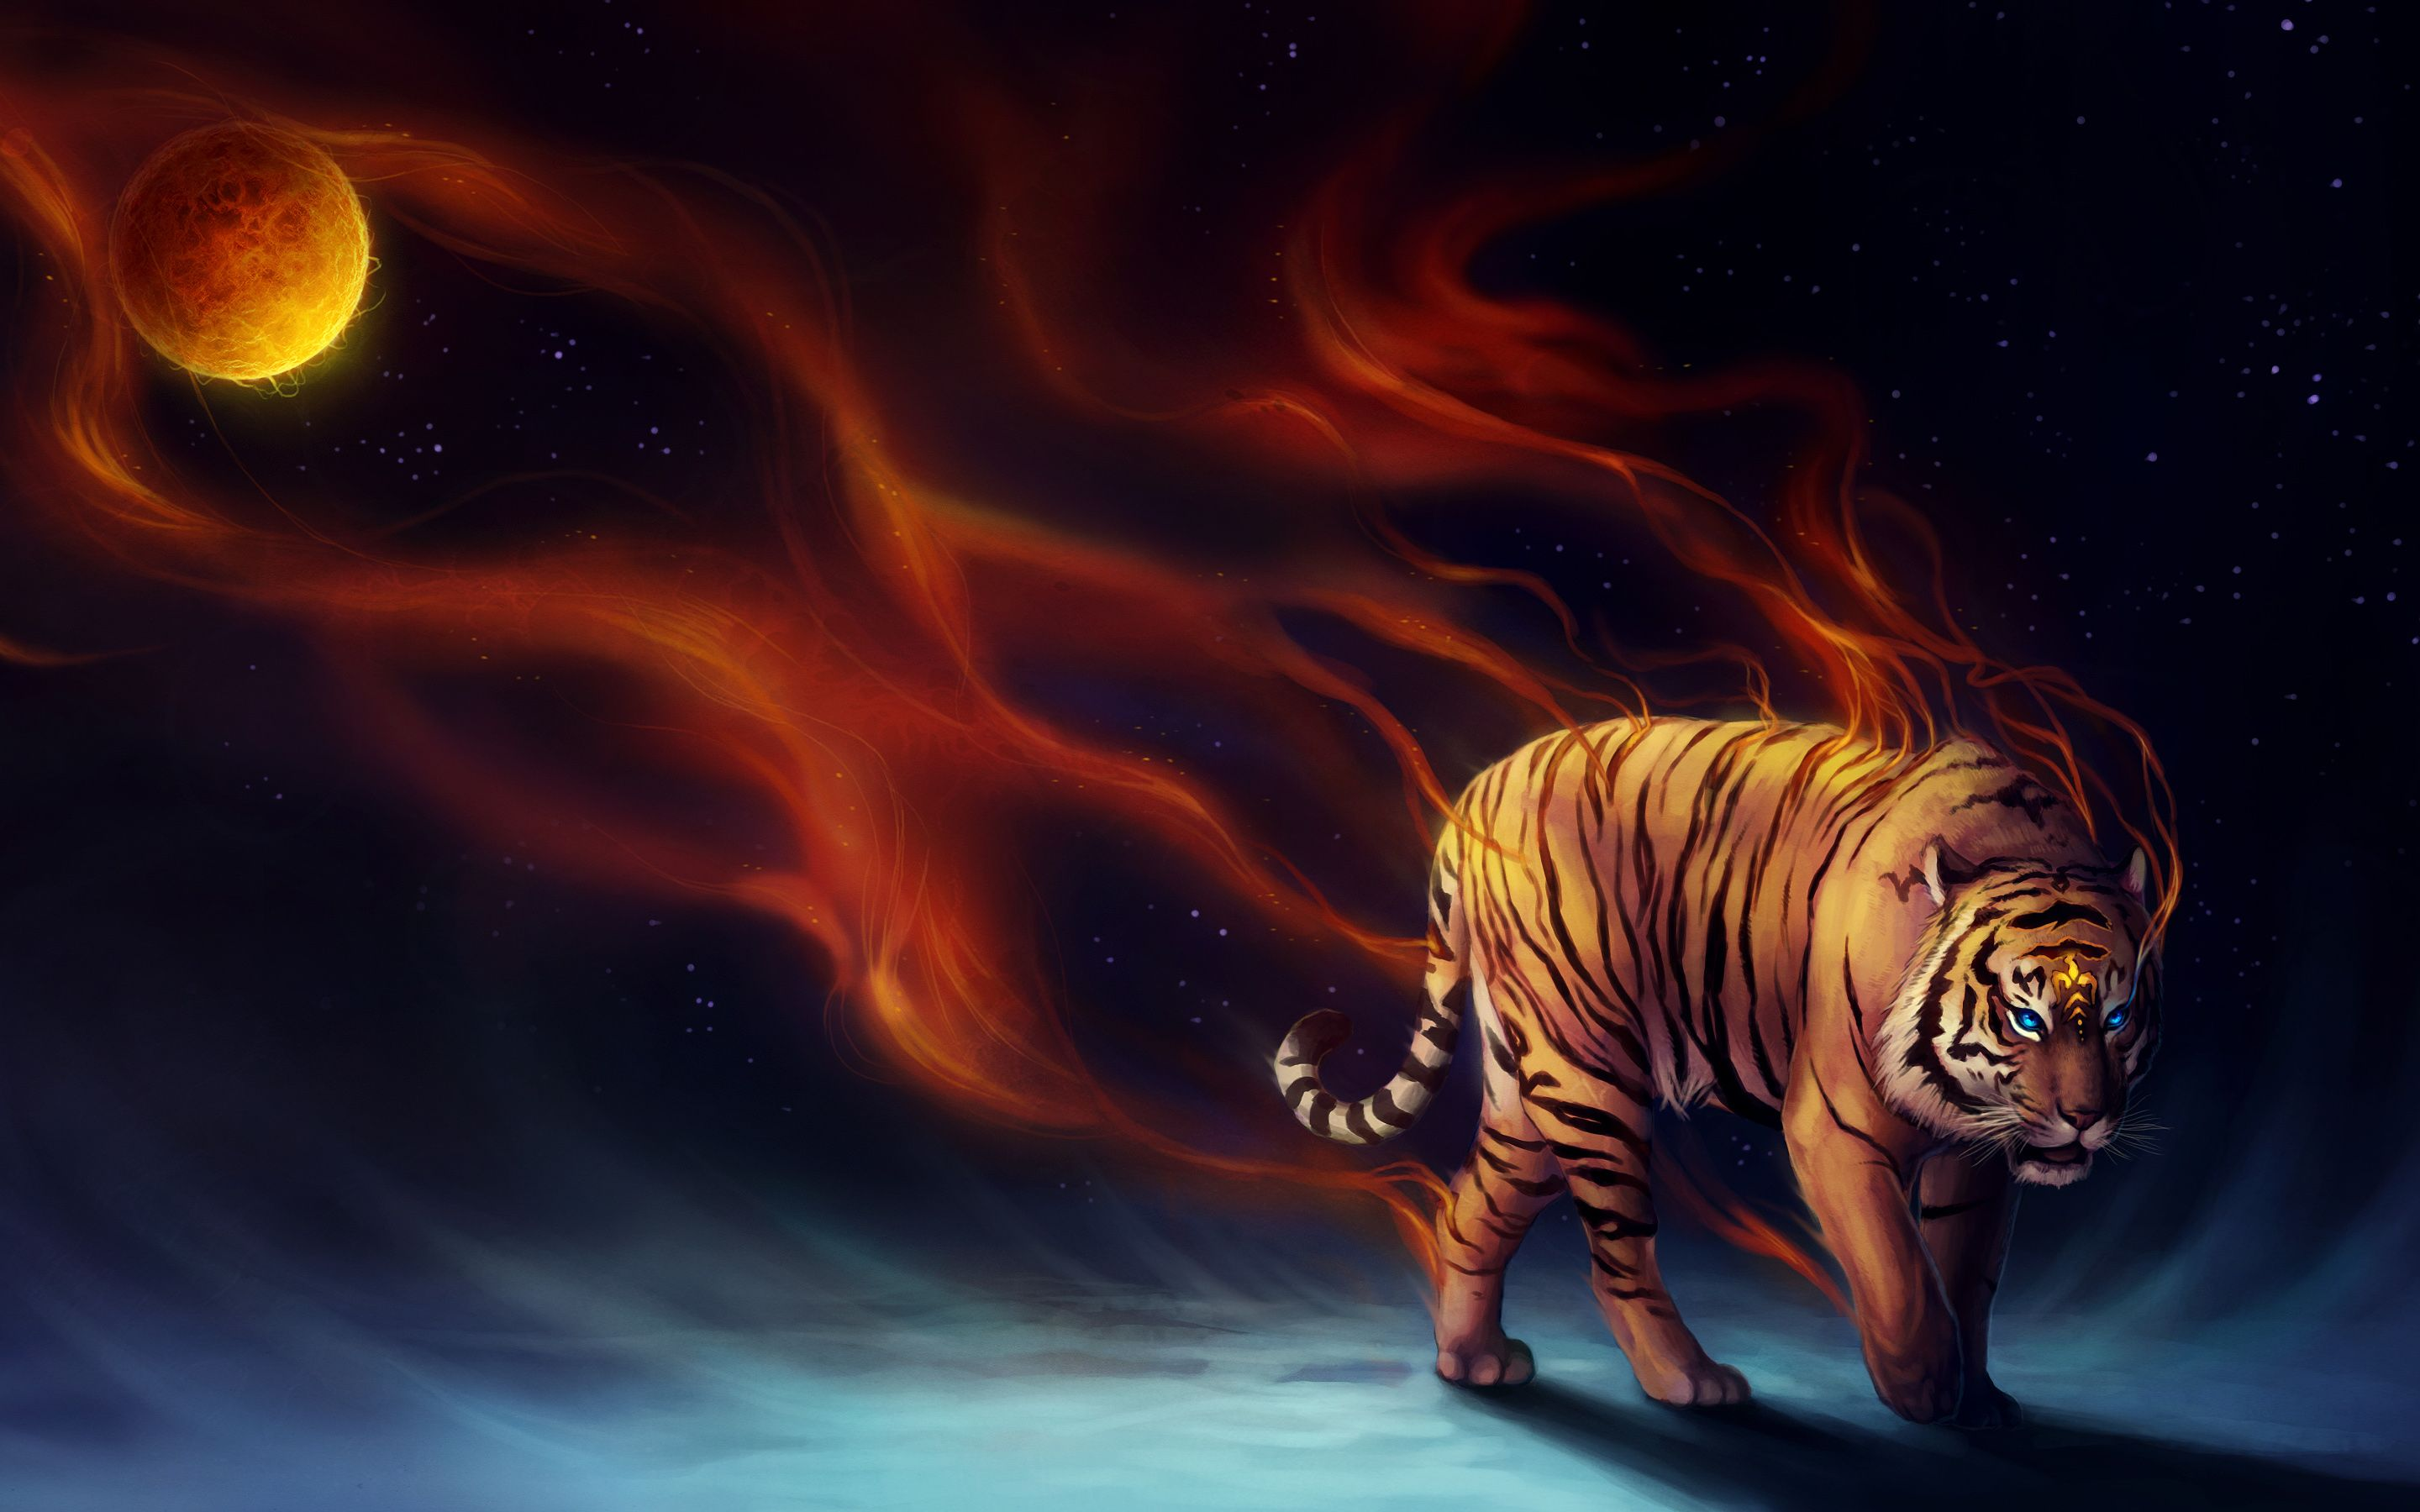 Cool Tiger Backgrounds Posted By John Peltier